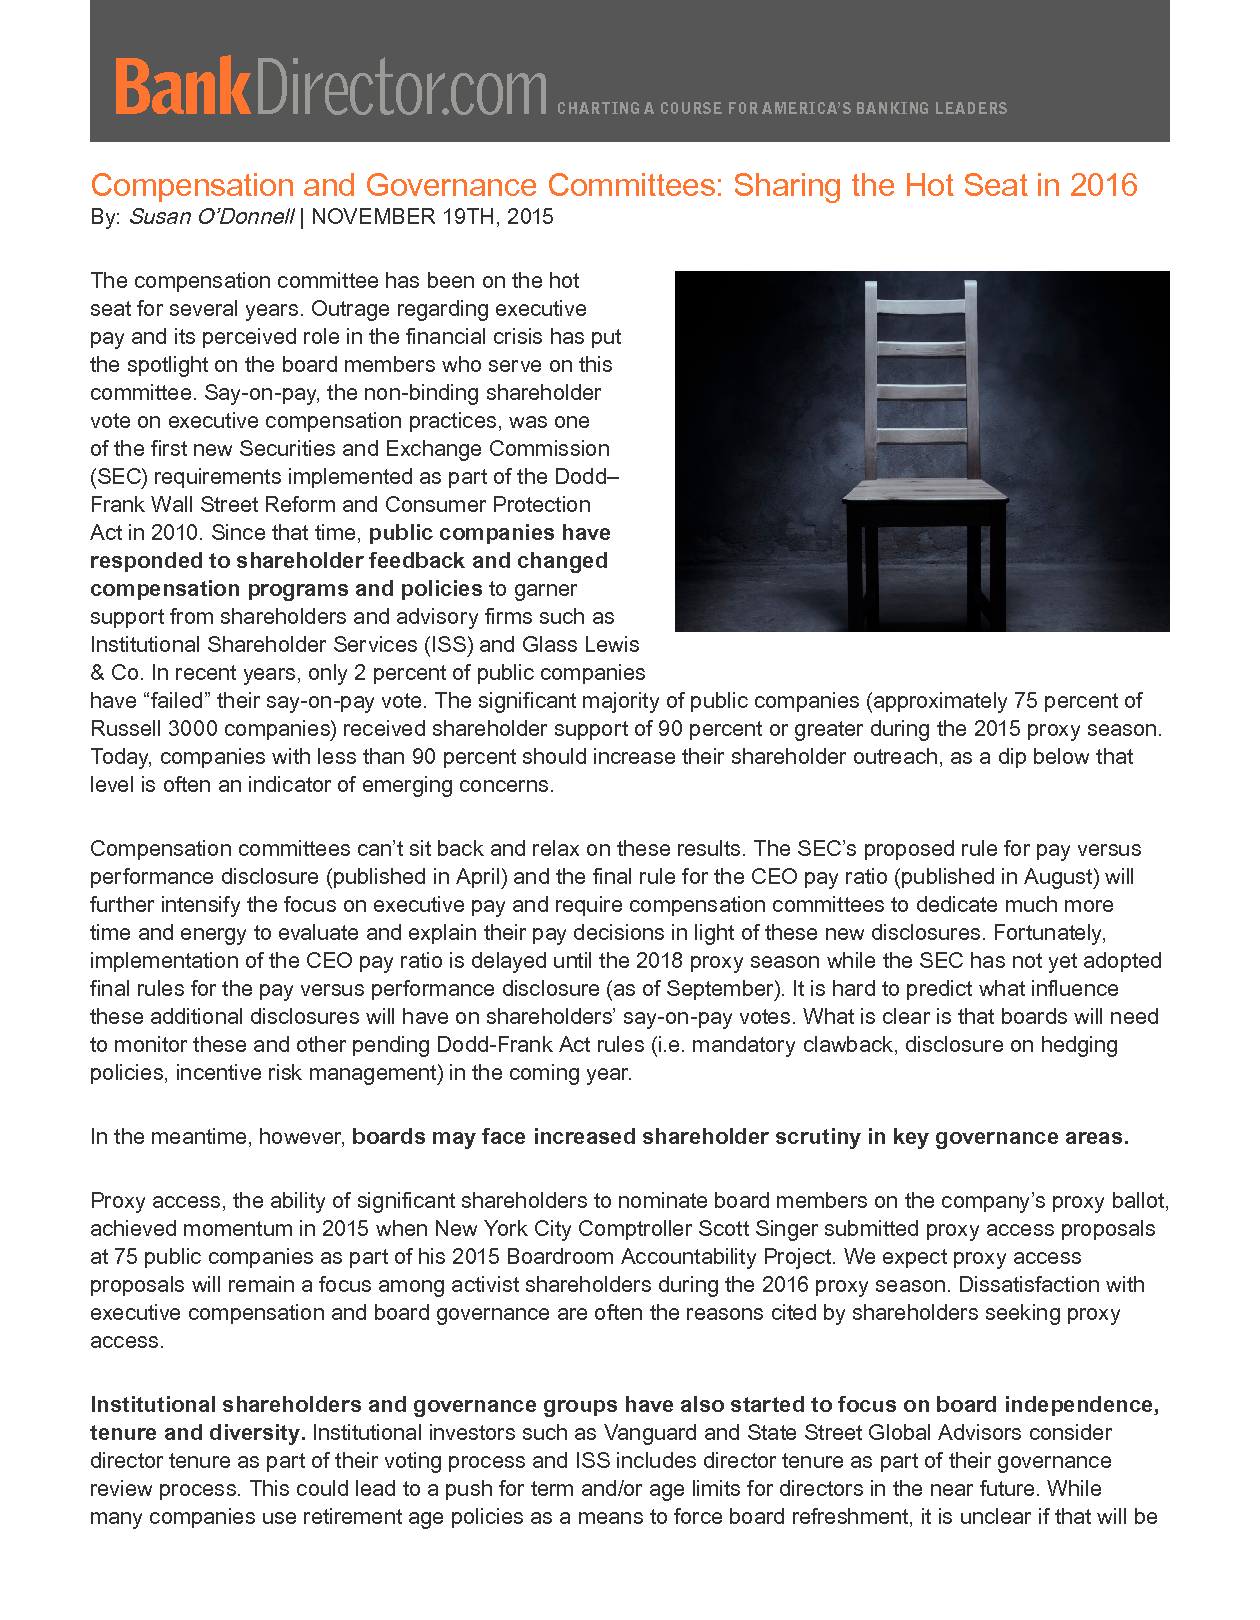 Compensation and Governance Committees: Sharing the Hot Seat in 2016 (PDF)